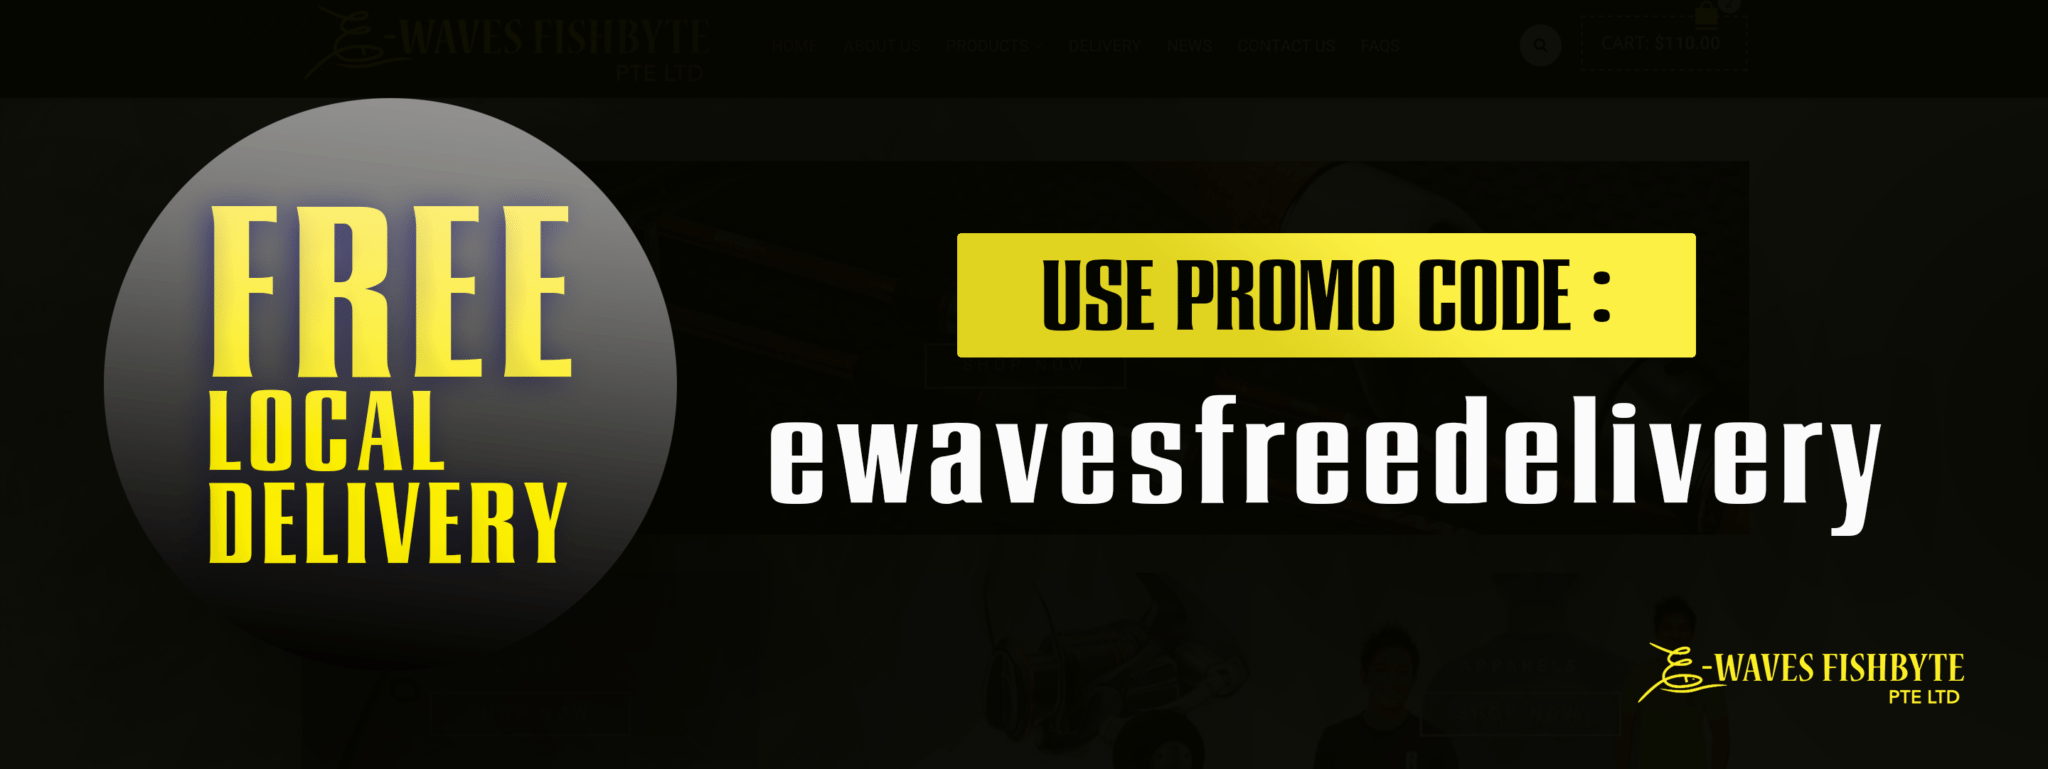 EWAVES FREE LOCAL DELIVERY